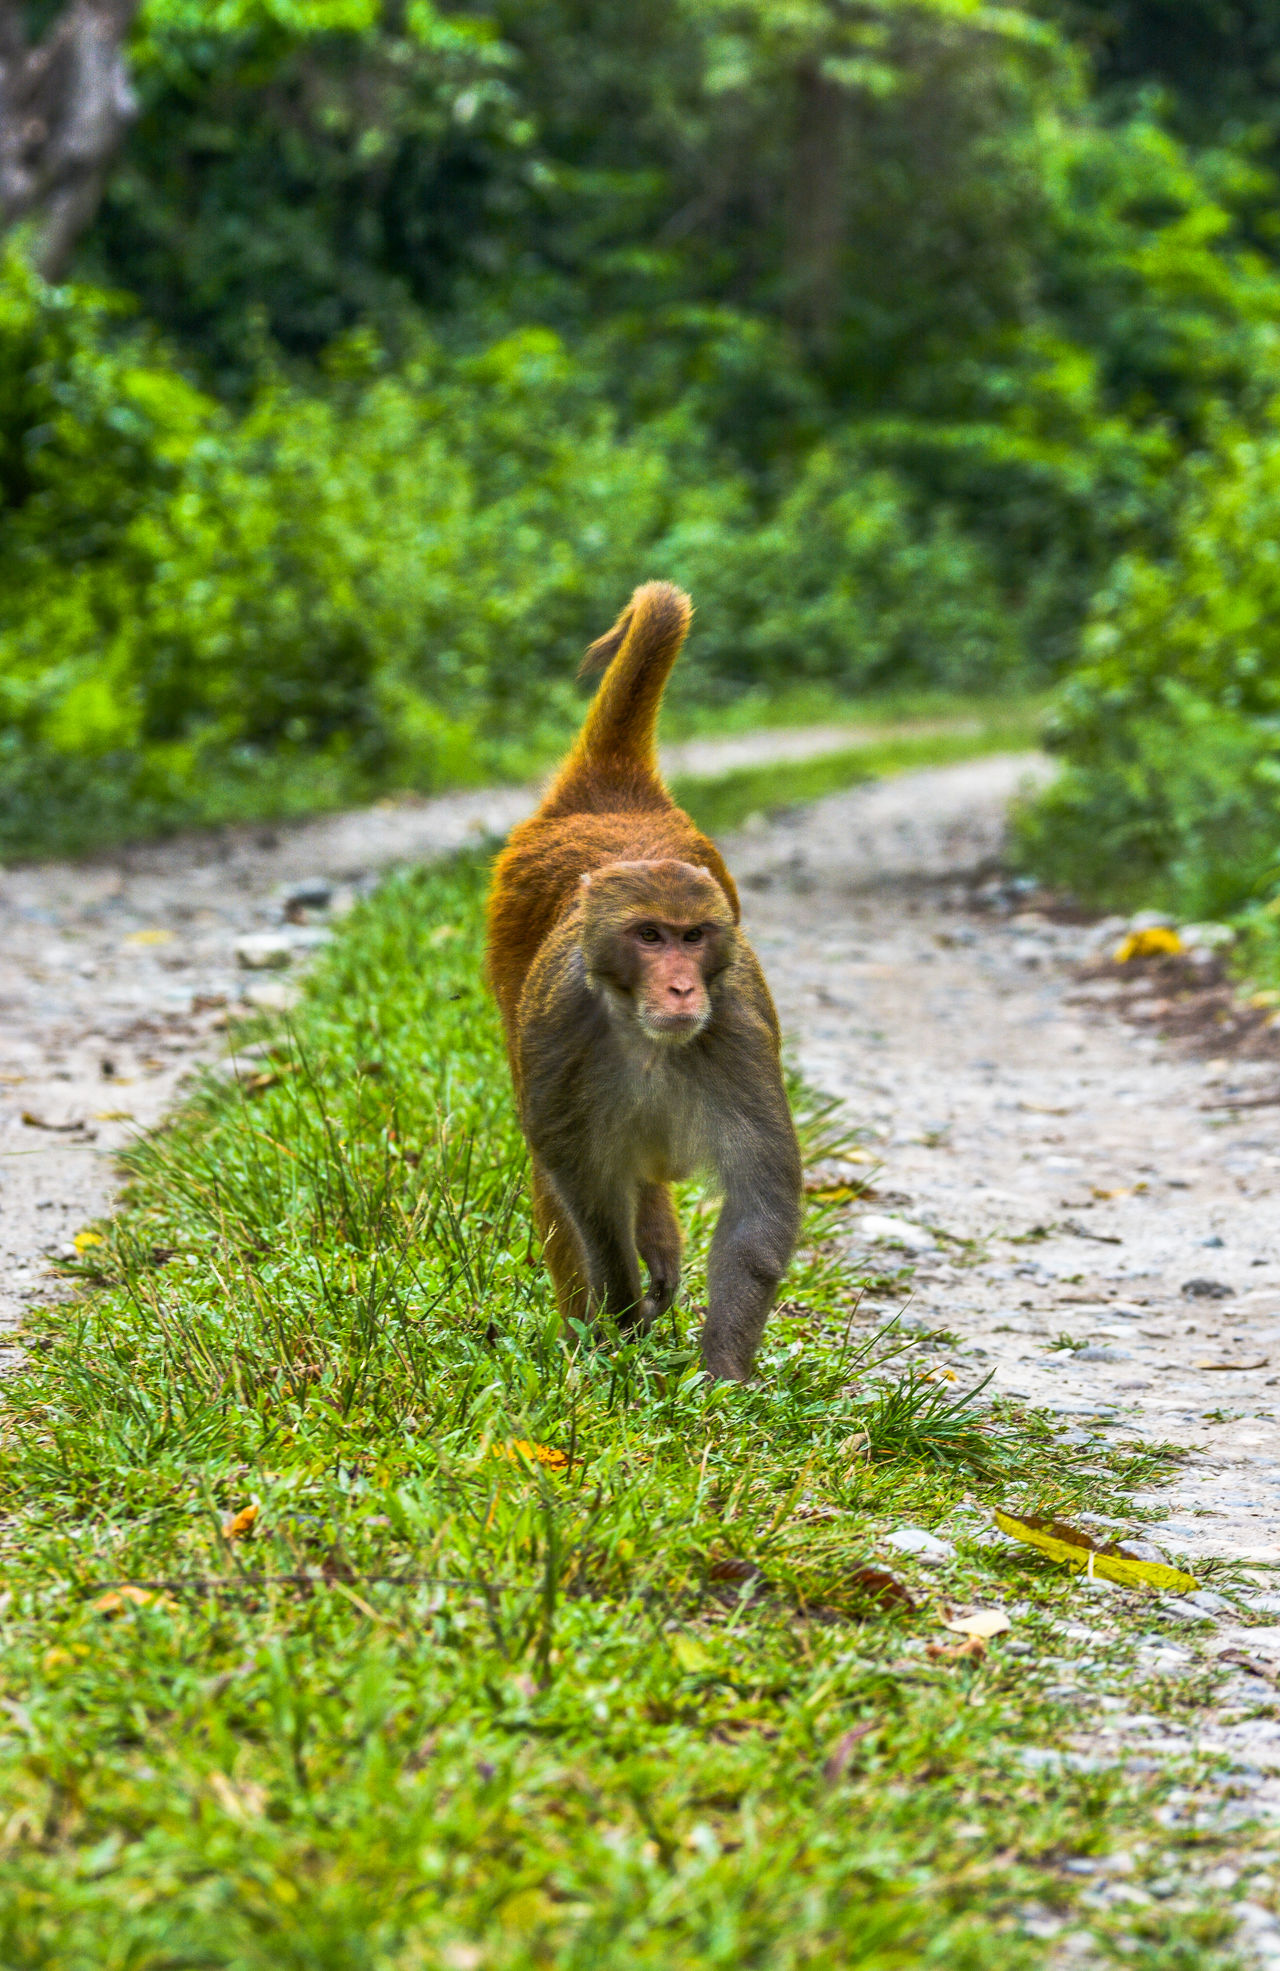 Alpha Male Animal Themes Animal Wildlife Animals In The Wild Close-up Day Fox Grass Green Color Macaque Monkey Mammal Nature No People One Animal Orang National Park Outdoors Plant